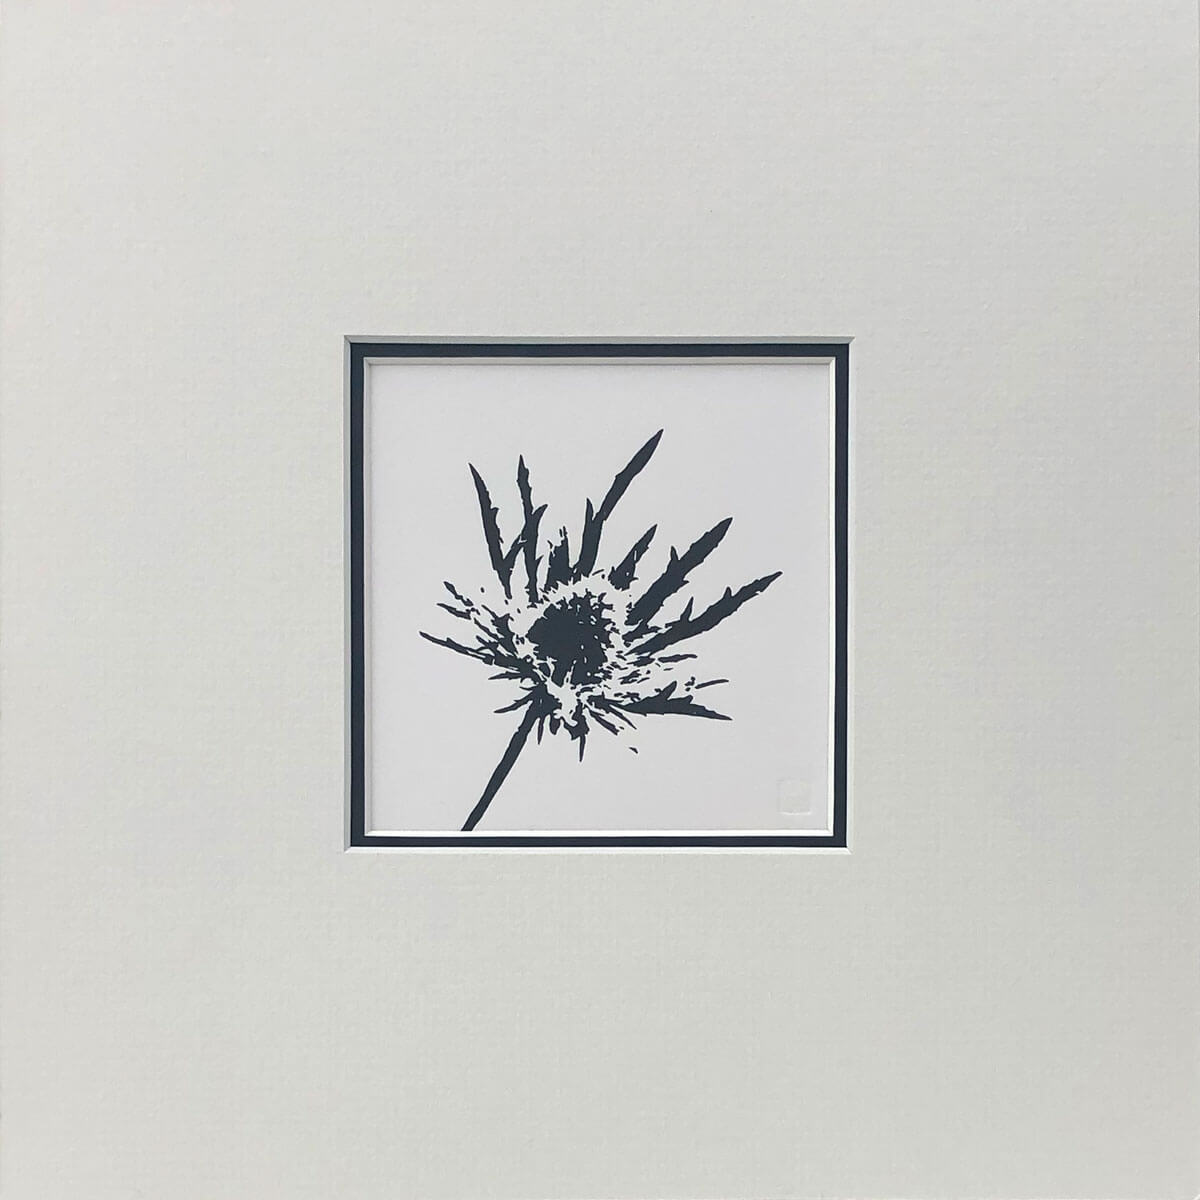 Sea Holly woodblock print mounted by Claire Cameron-Smith